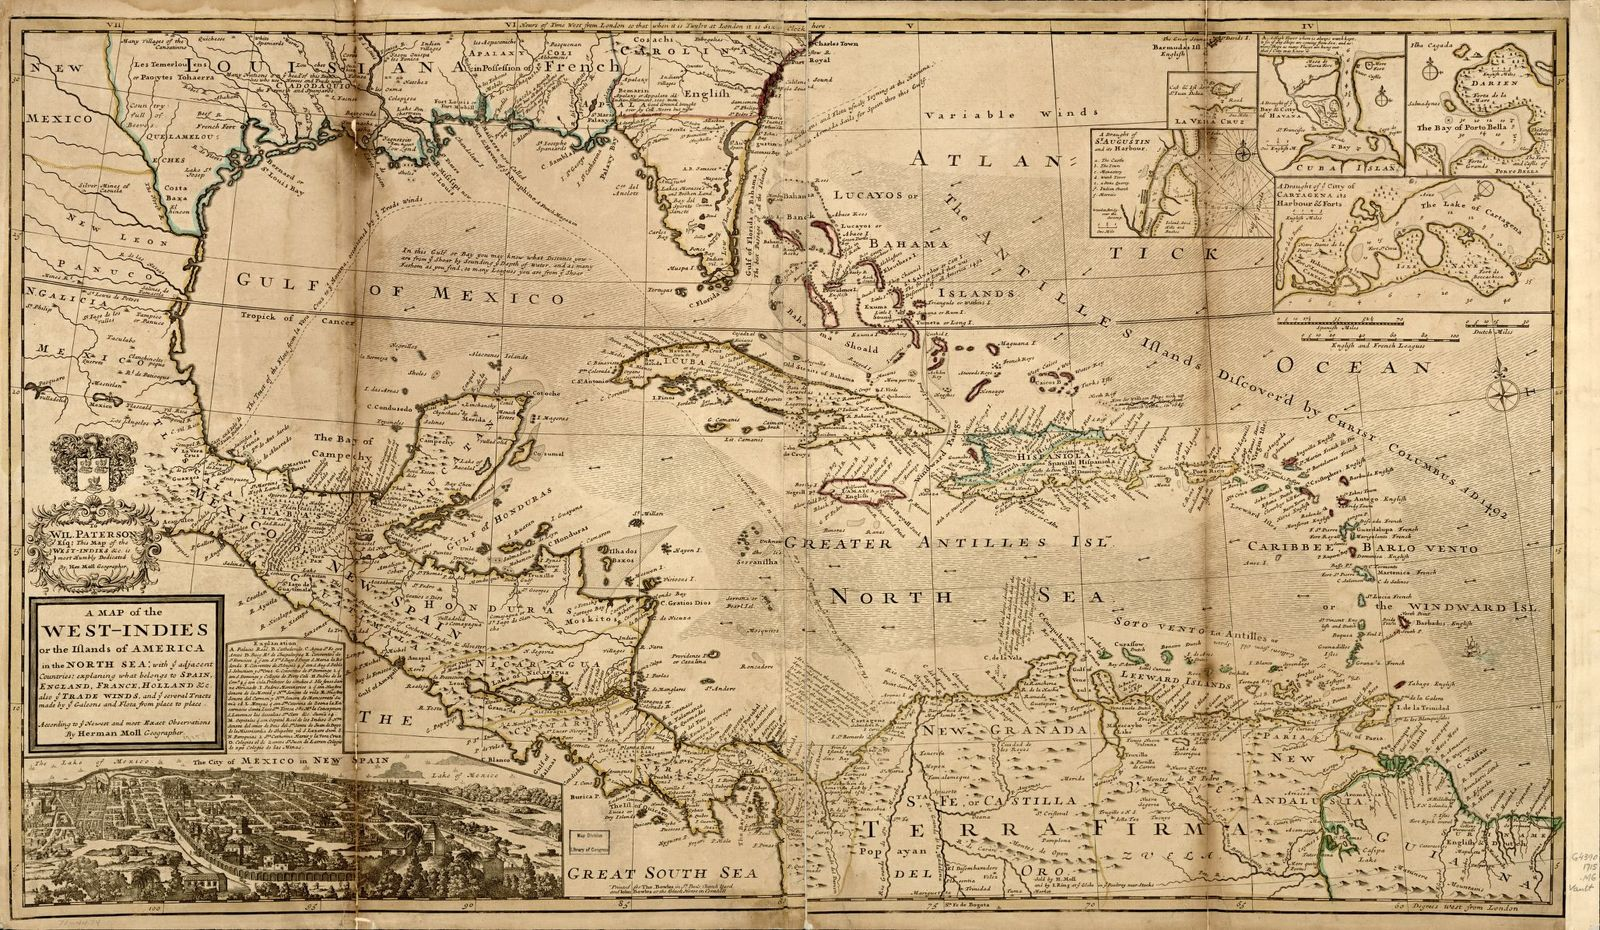 A map of the West-Indies or the islands of America in the North Sea; with ye adjacent countries; explaning [sic] what belongs to Spain, England, France, Holland &c. also ye trade winds, and ye several tracts made by ye galeons and flota from place to place. According to ye newest and most exact observations,